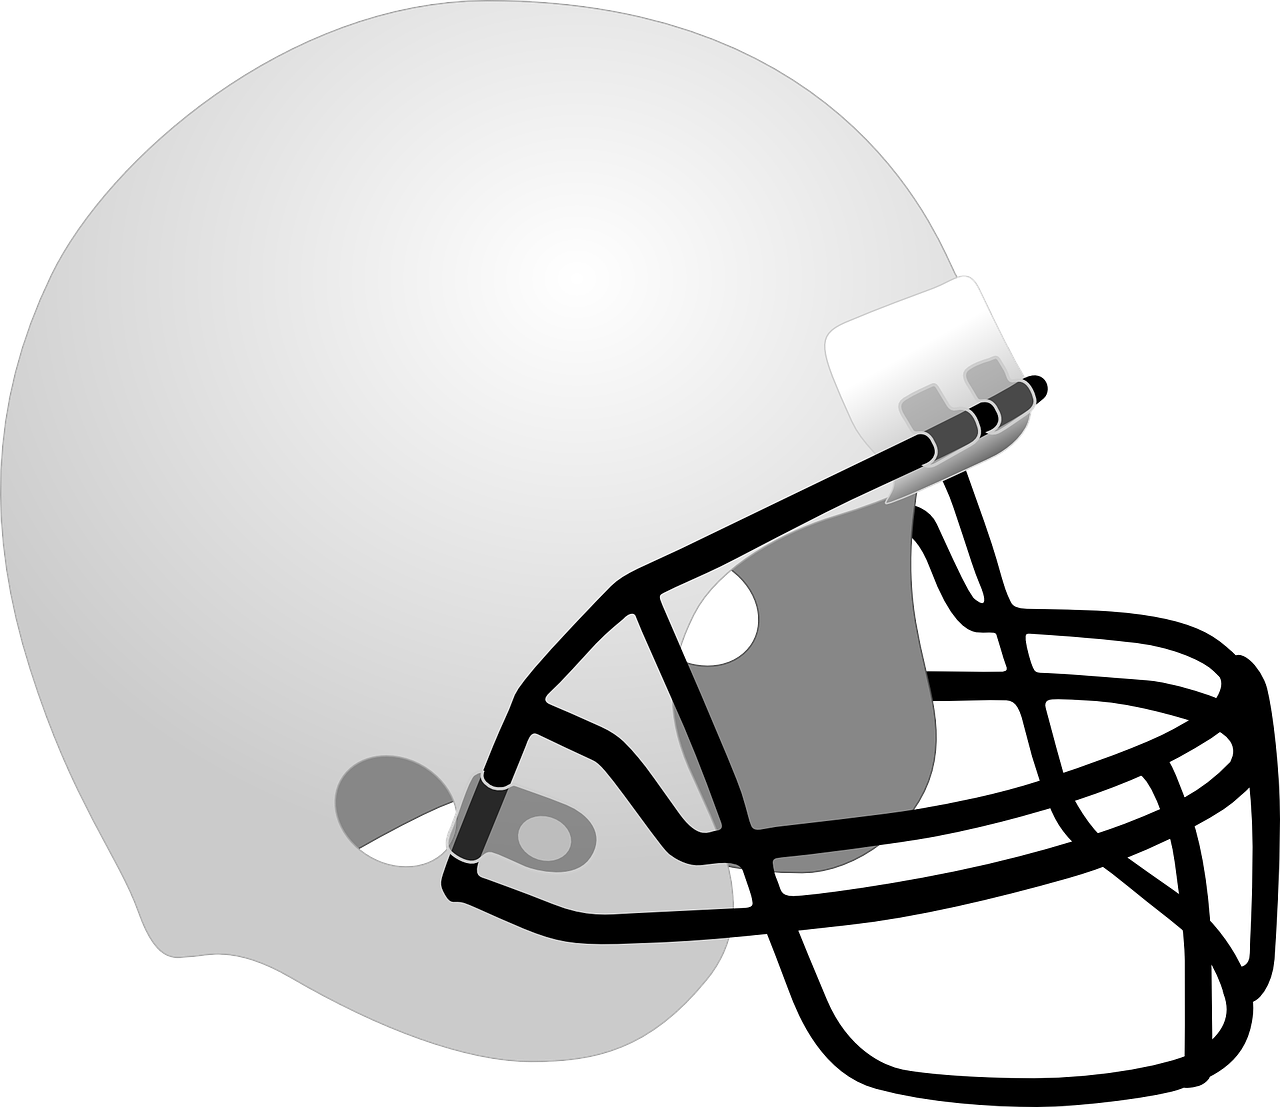 American football field clipart svg freeuse download Whit Clipart football helmet - Free Clipart on Dumielauxepices.net svg freeuse download